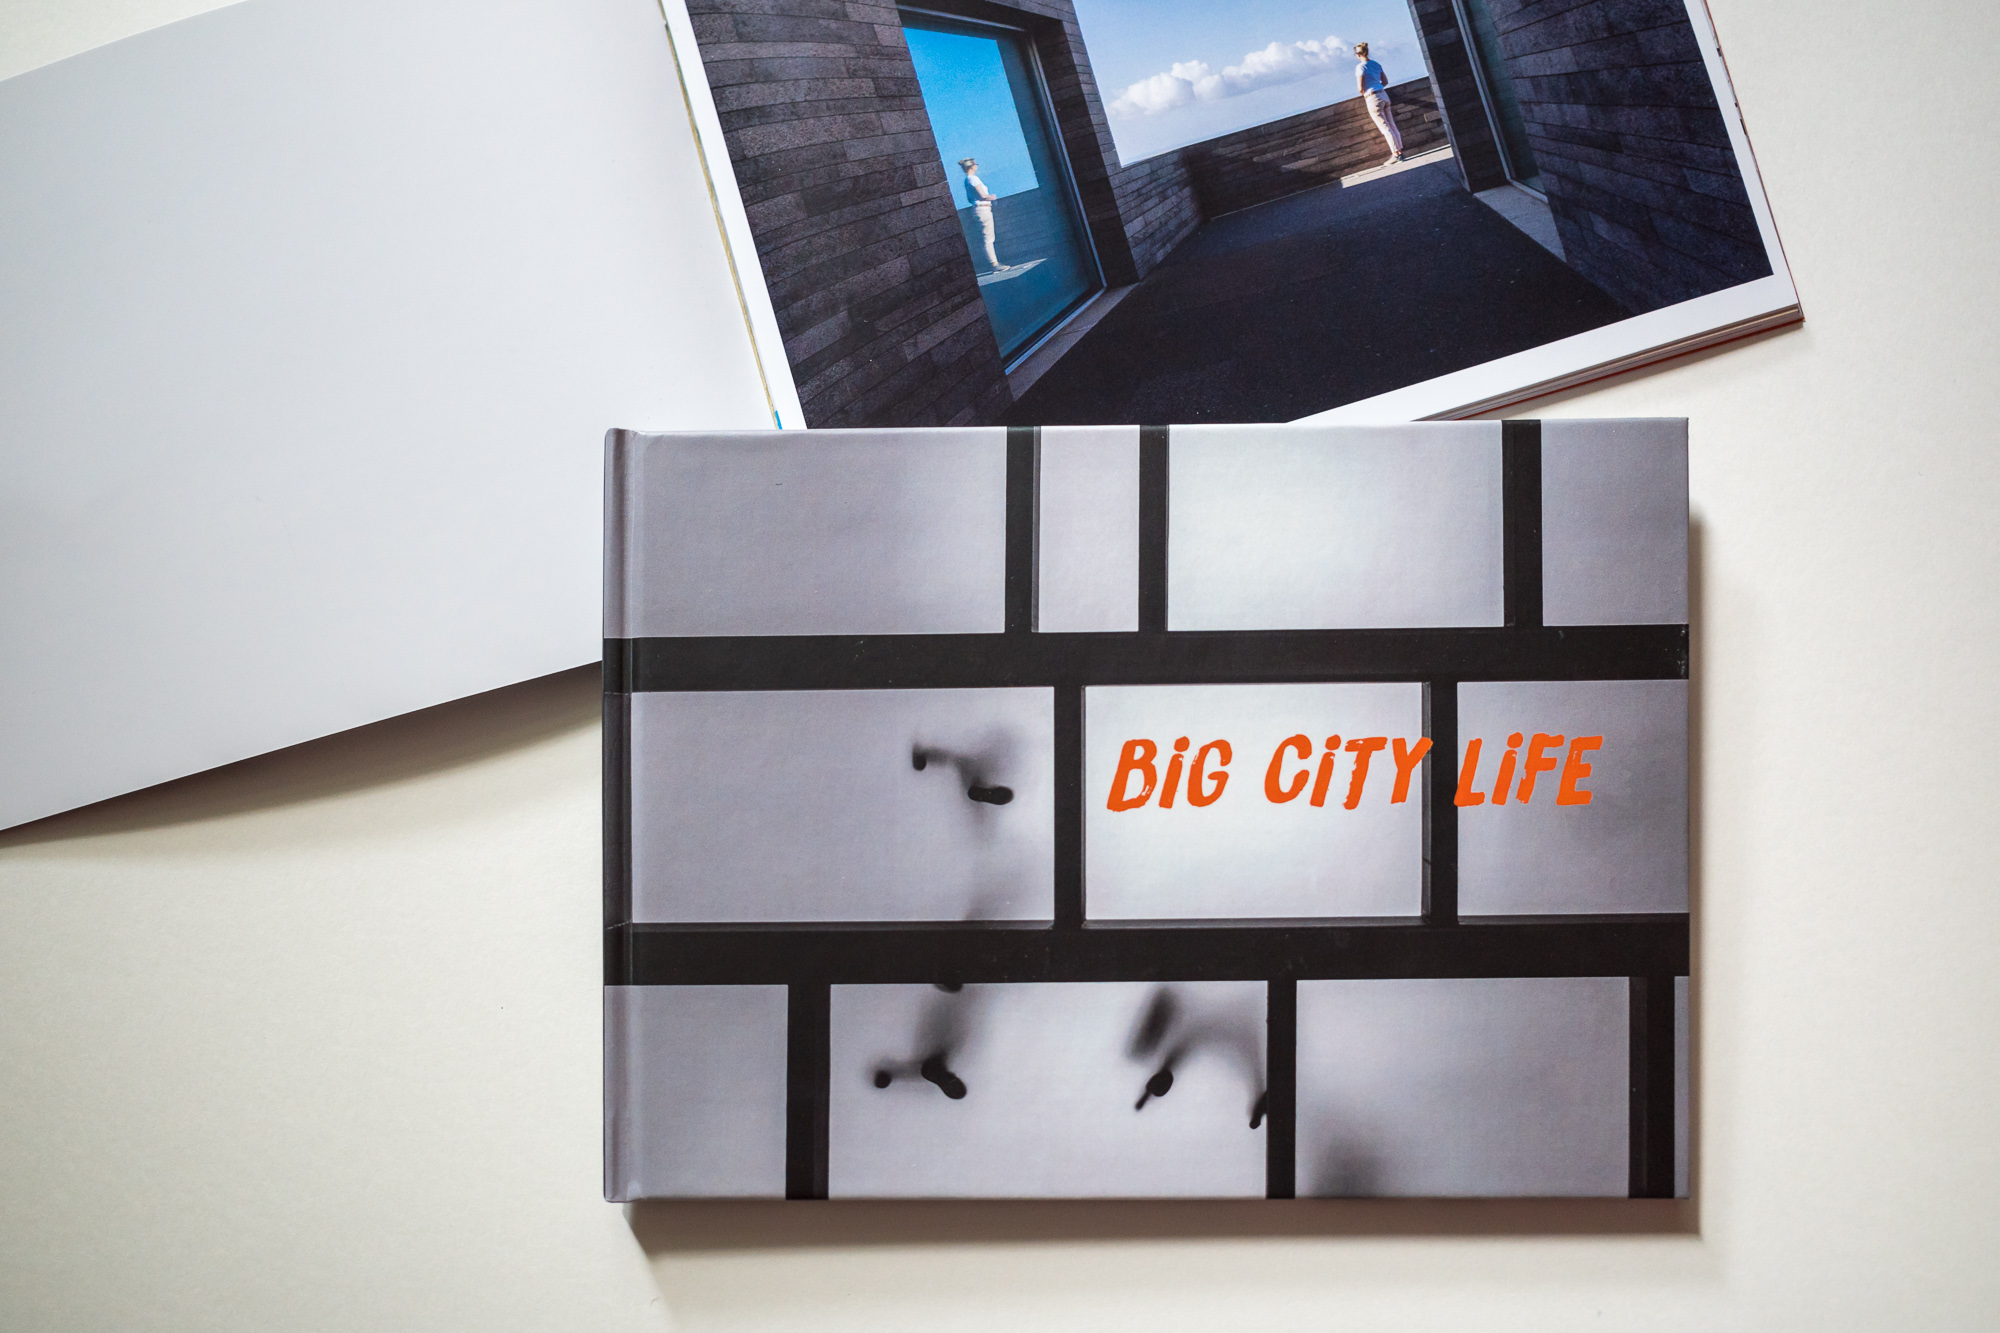 querformat-fotografie - Achim Katzberg - BiG CiTY LiFE - querformat-fotografie_BiG_CiTY_LiFE_neu-001